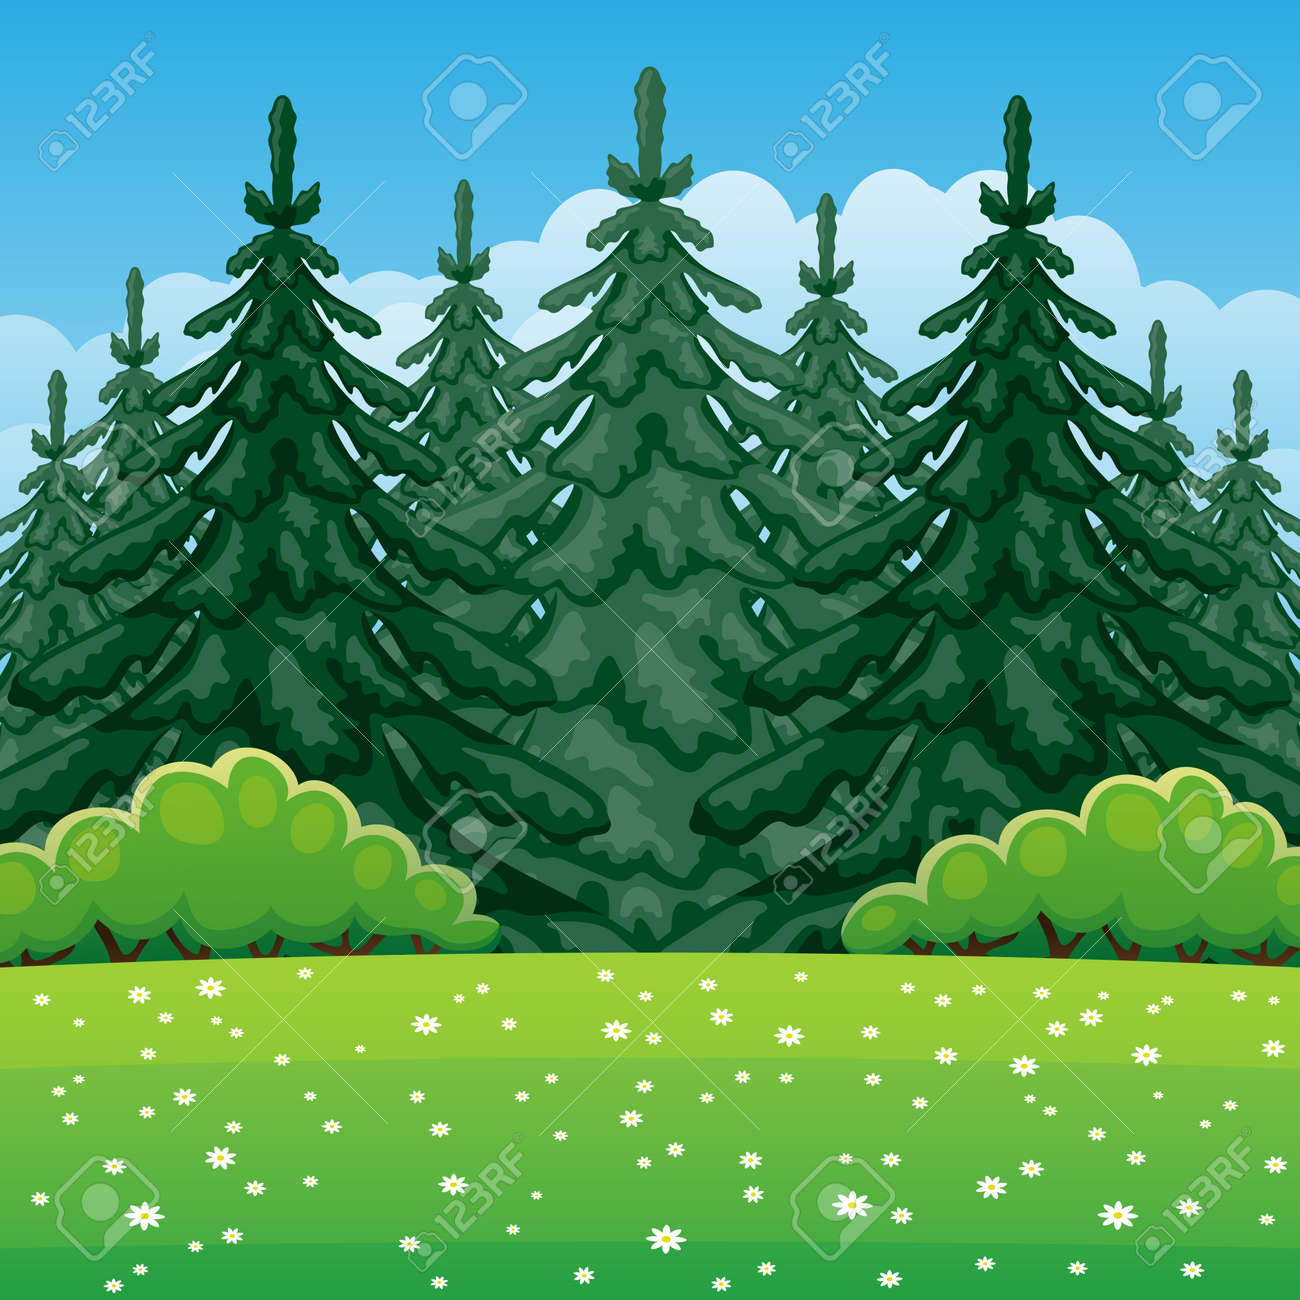 Illustration of summer nature with coniferous forest. - 166512689